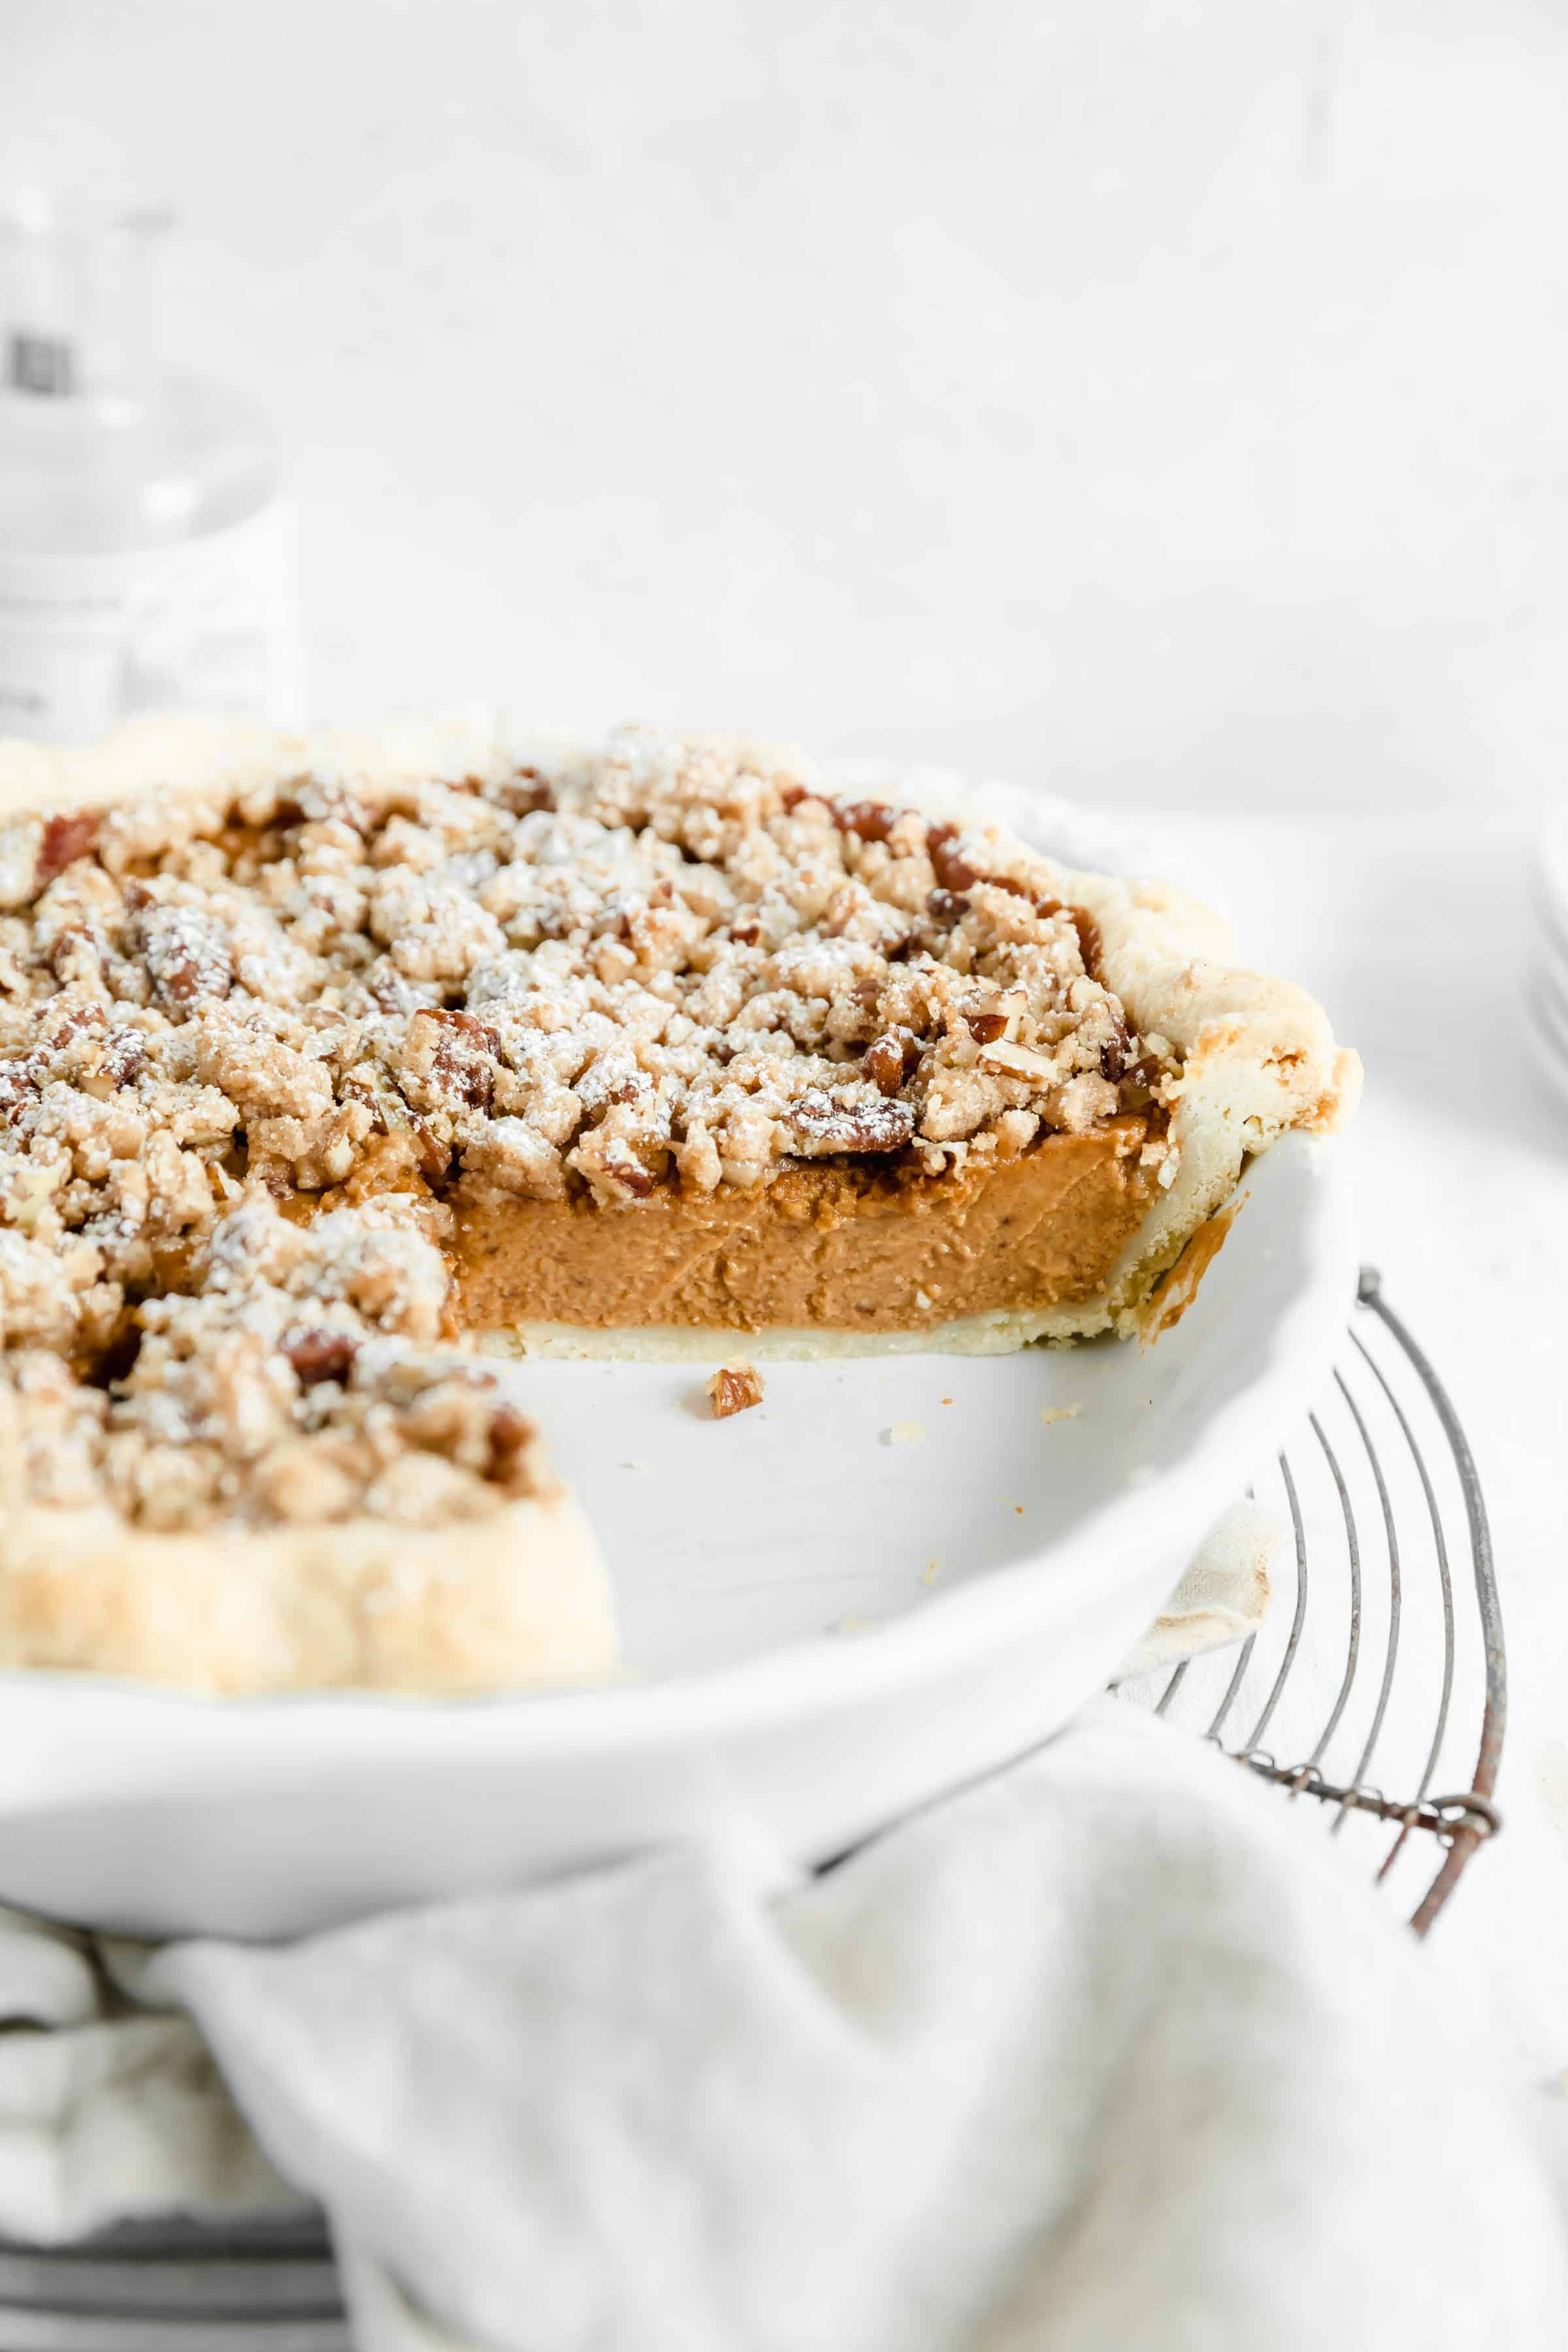 45 degree angle shot of cross section of sweet potato crumble pie